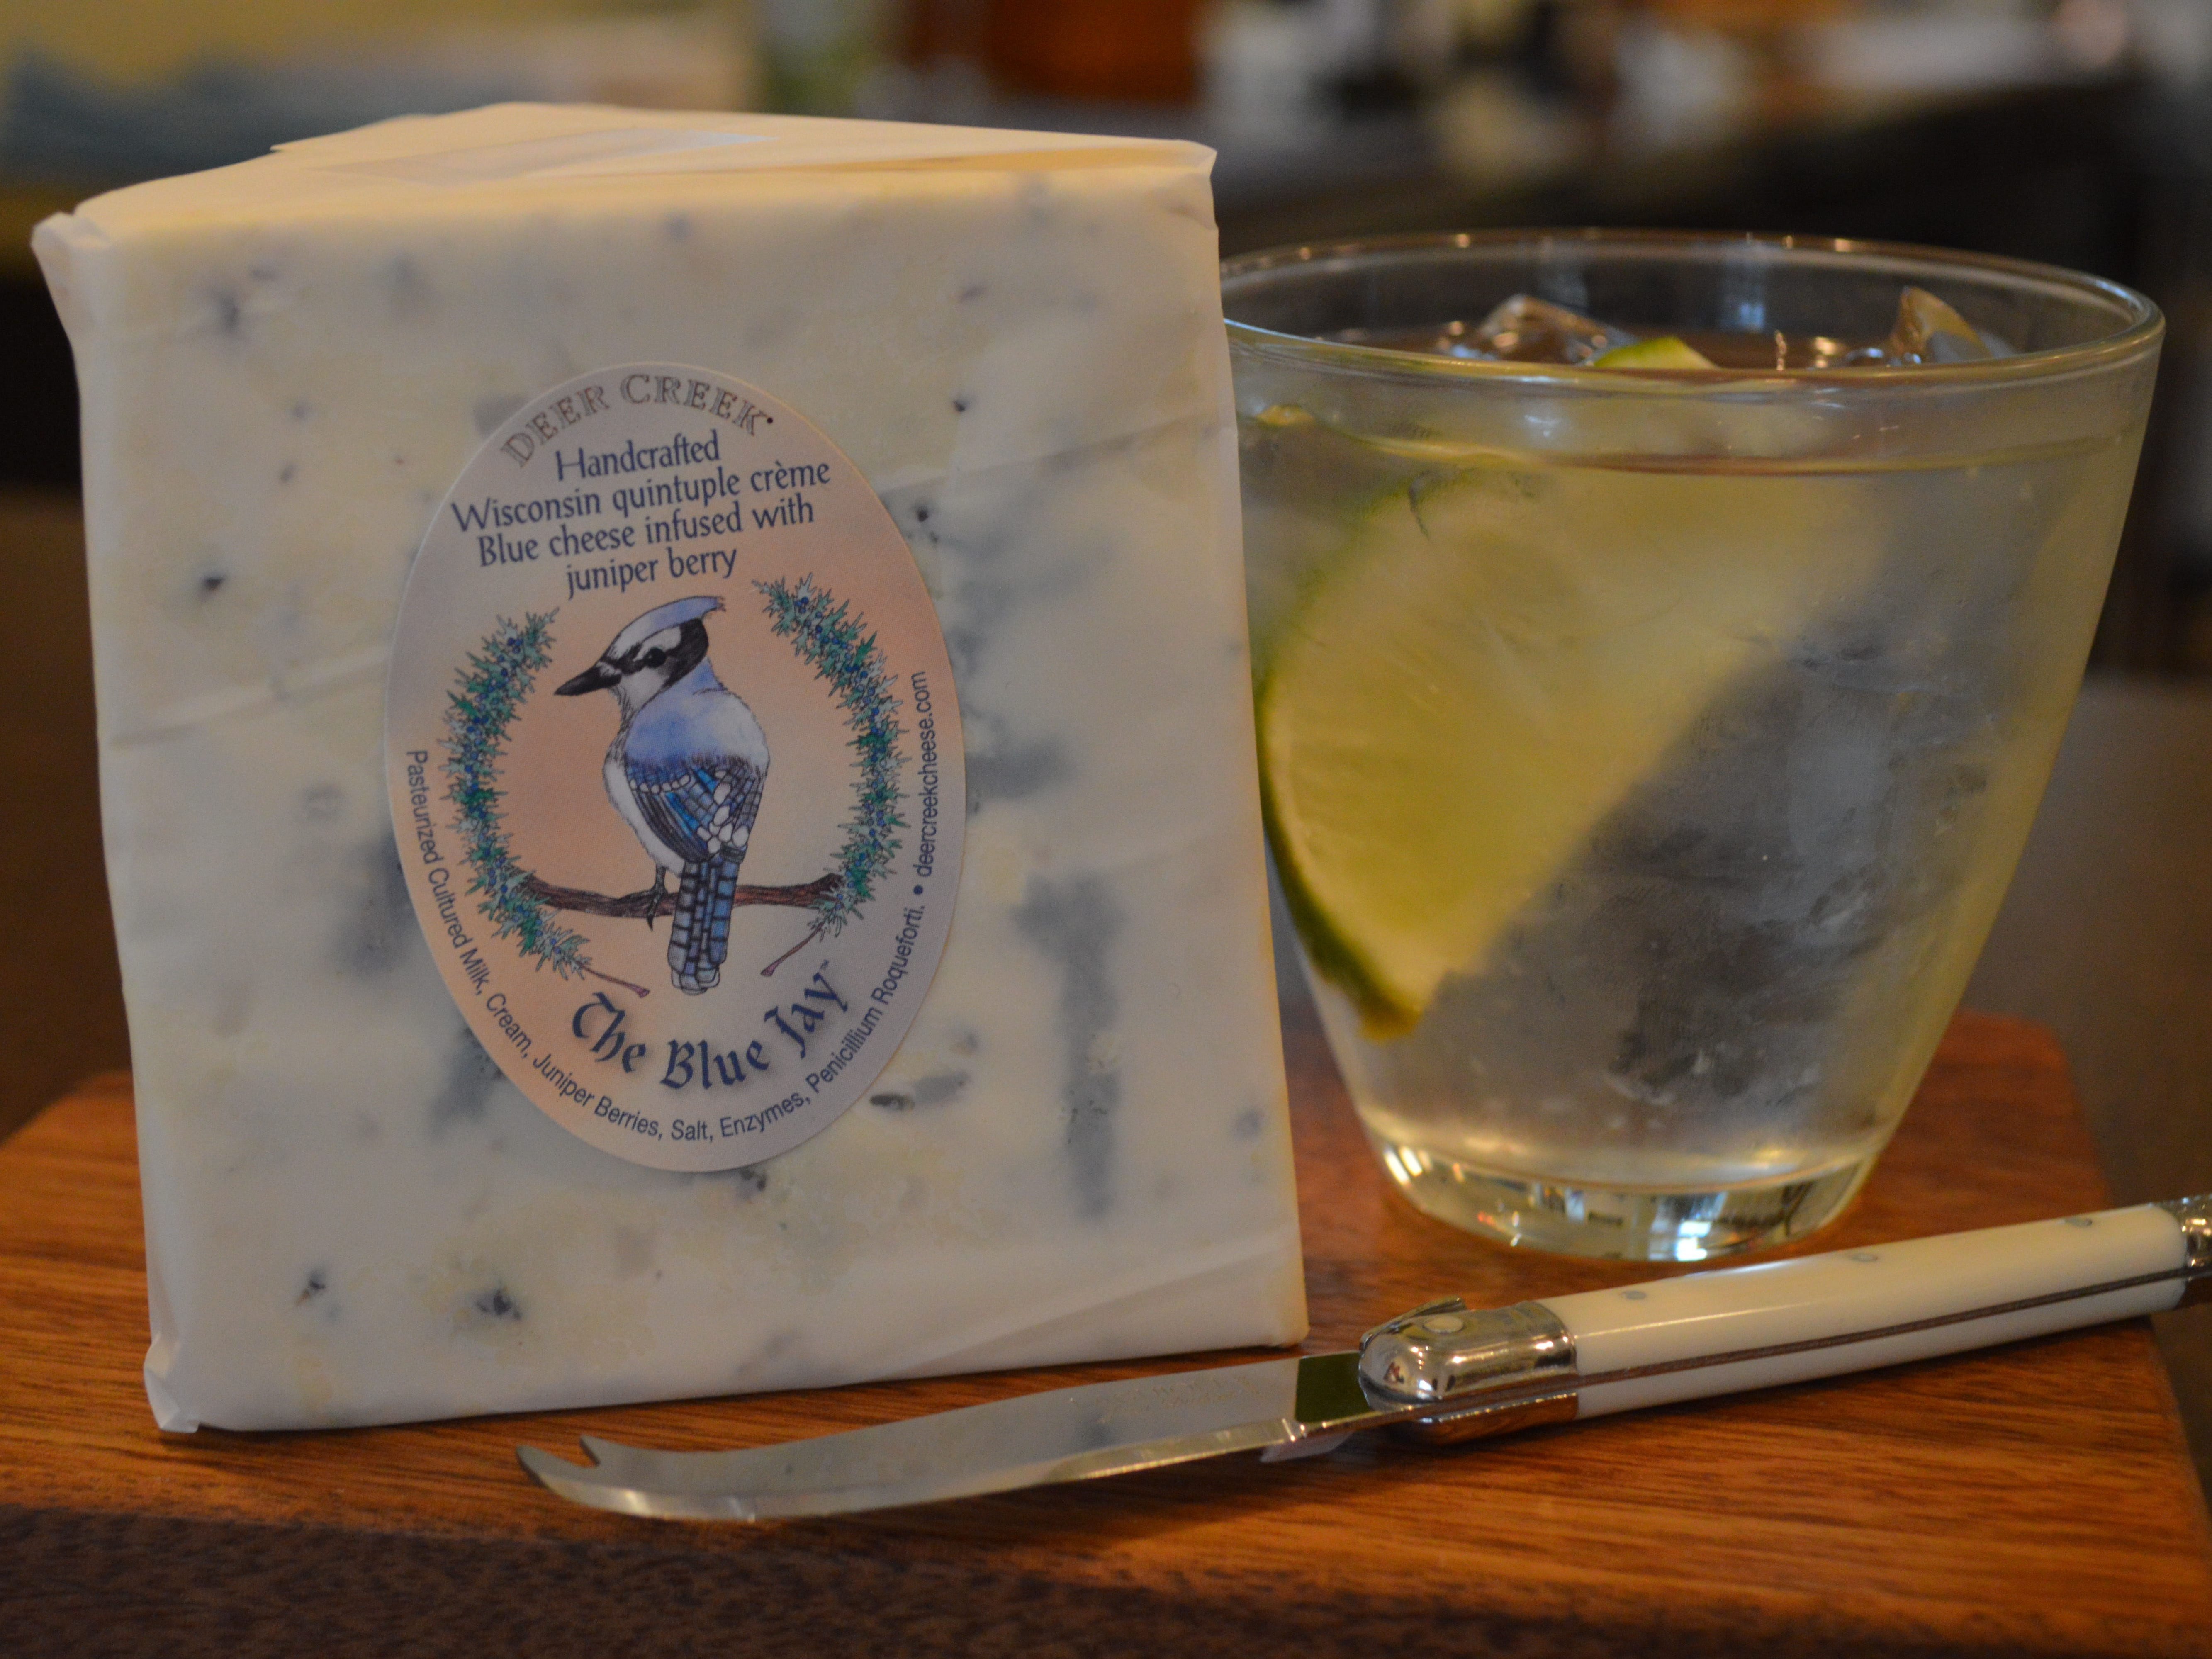 If gin and tonic is your go-to cocktail, try it with Deer Creek's handcrafted Wisconsin quintuple creme blue cheese infused with juniper berries, said Sabina Magyar, proprietor of The Village Cheese Shop in Wauwatosa.